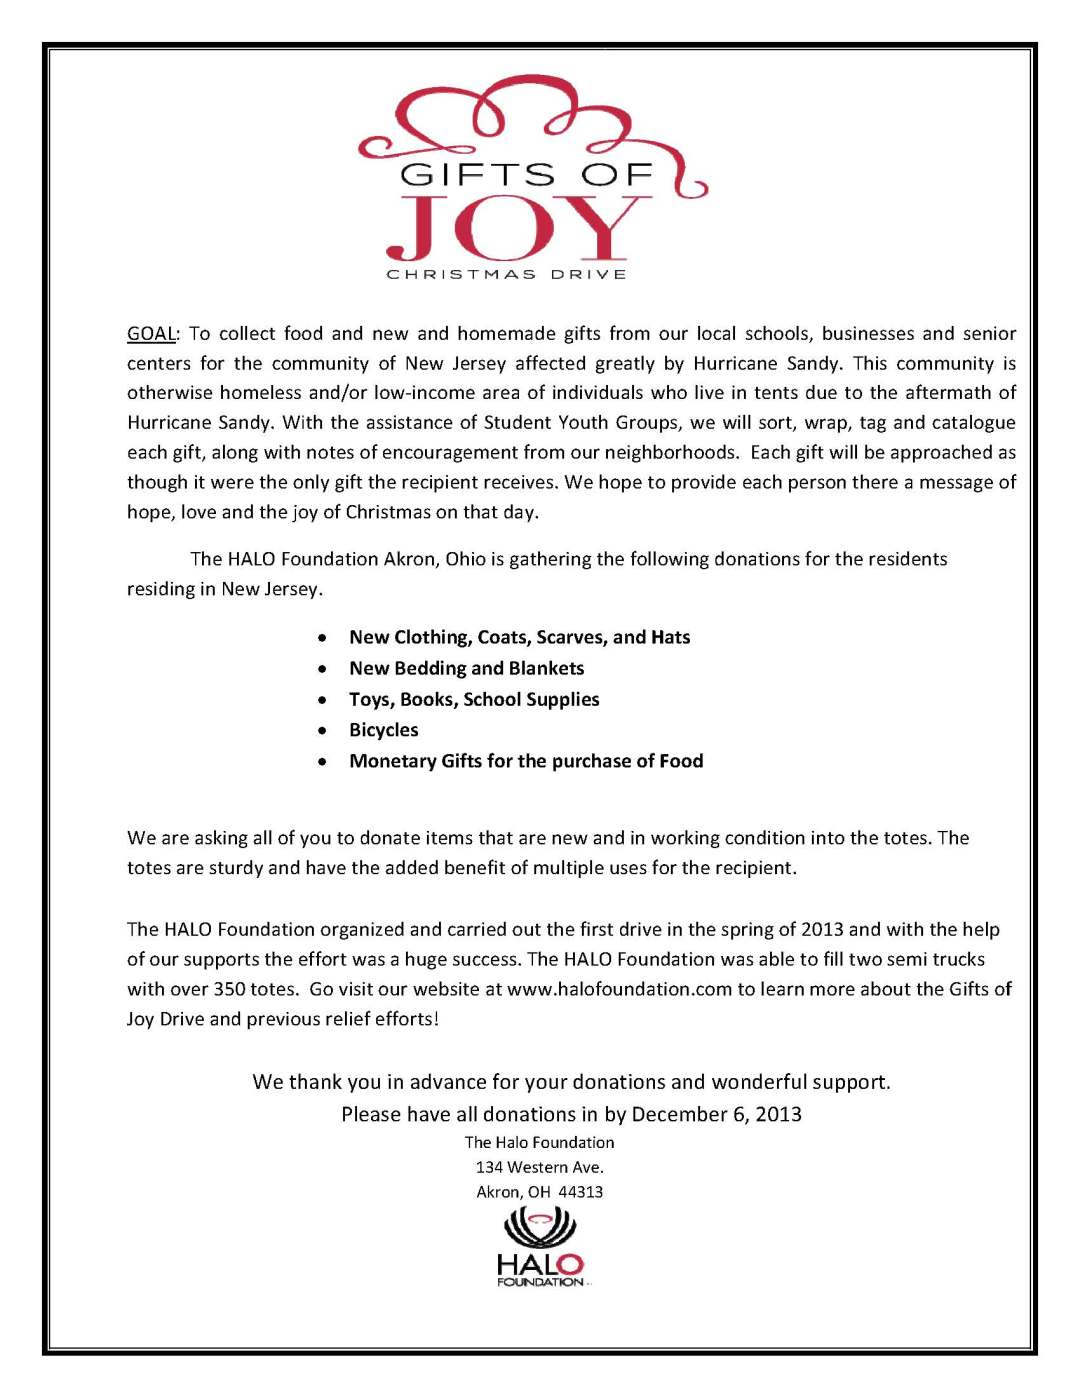 Gifts of Joy Christmas Drive Donation Guide - Halo Foundation